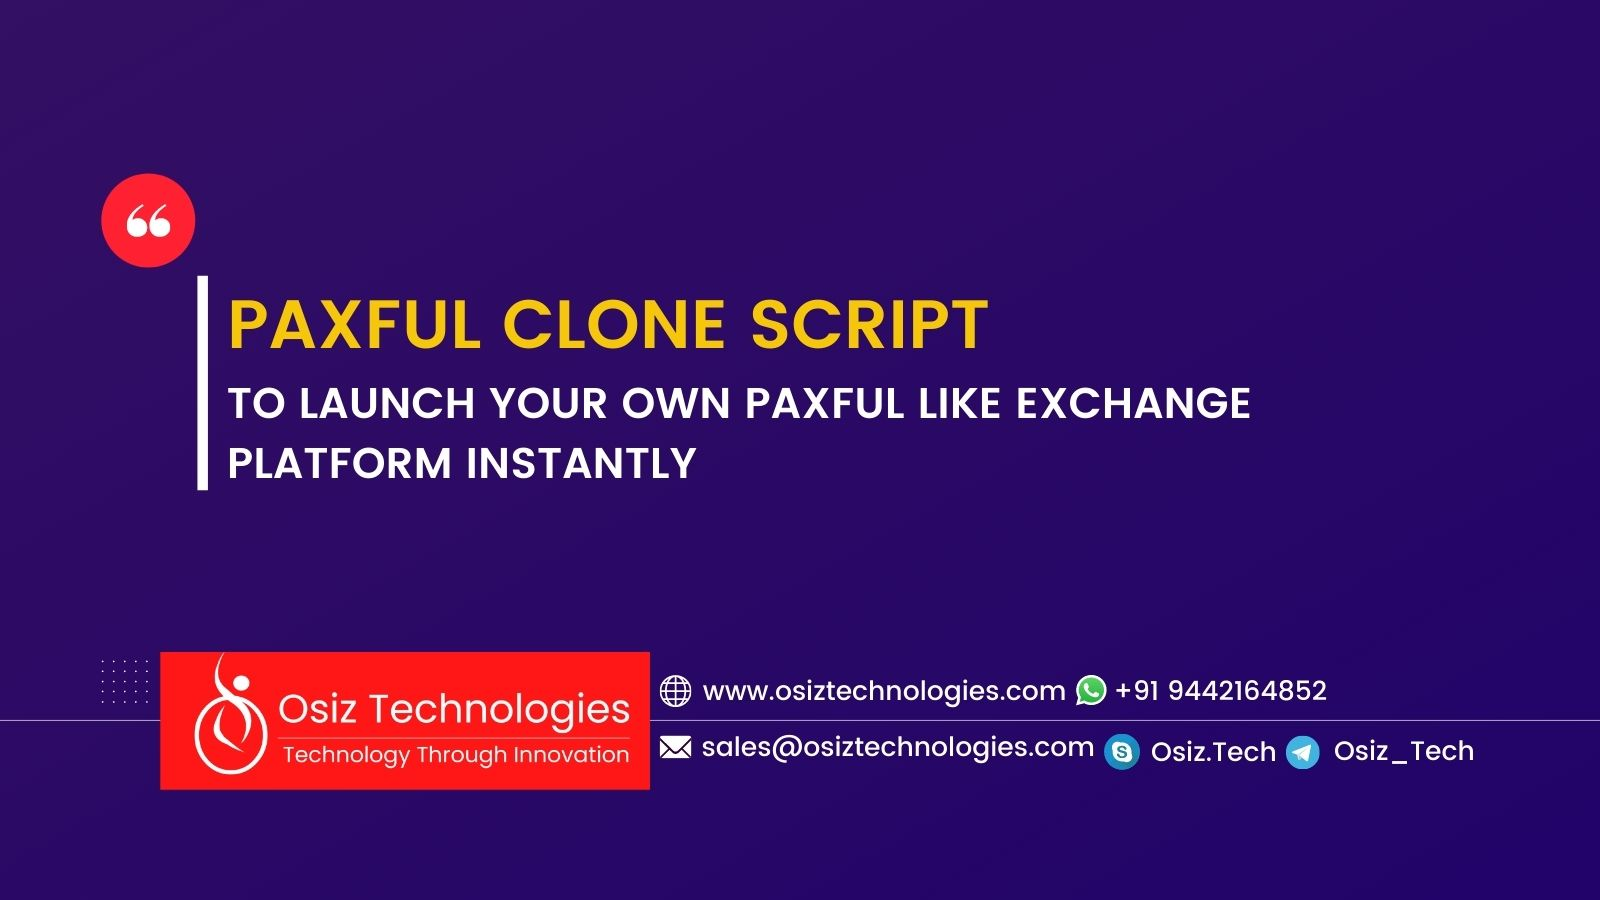 PAXFUL CLONE SCRIPT TO LAUNCH YOUR OWN PAXFUL LIKE EXCHANGE PLATFORM INSTANTLY